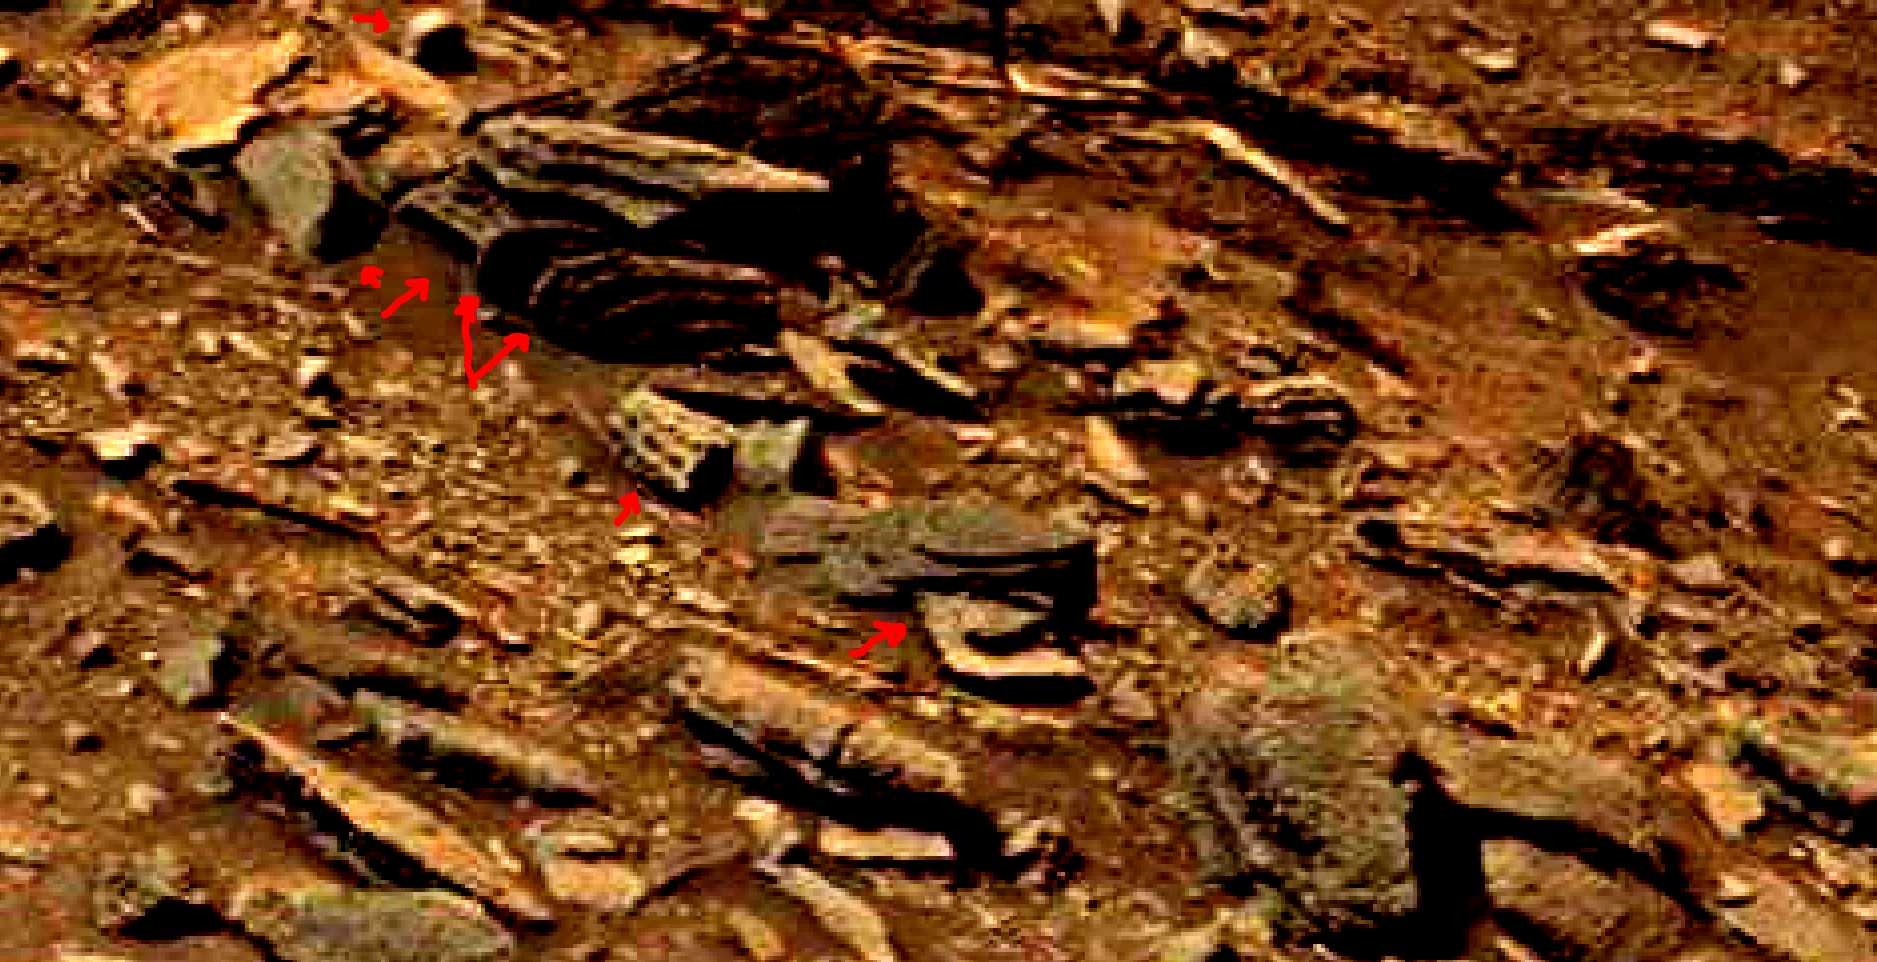 mars-sol-1463-anomaly-artifacts-23a-was-life-on-mars